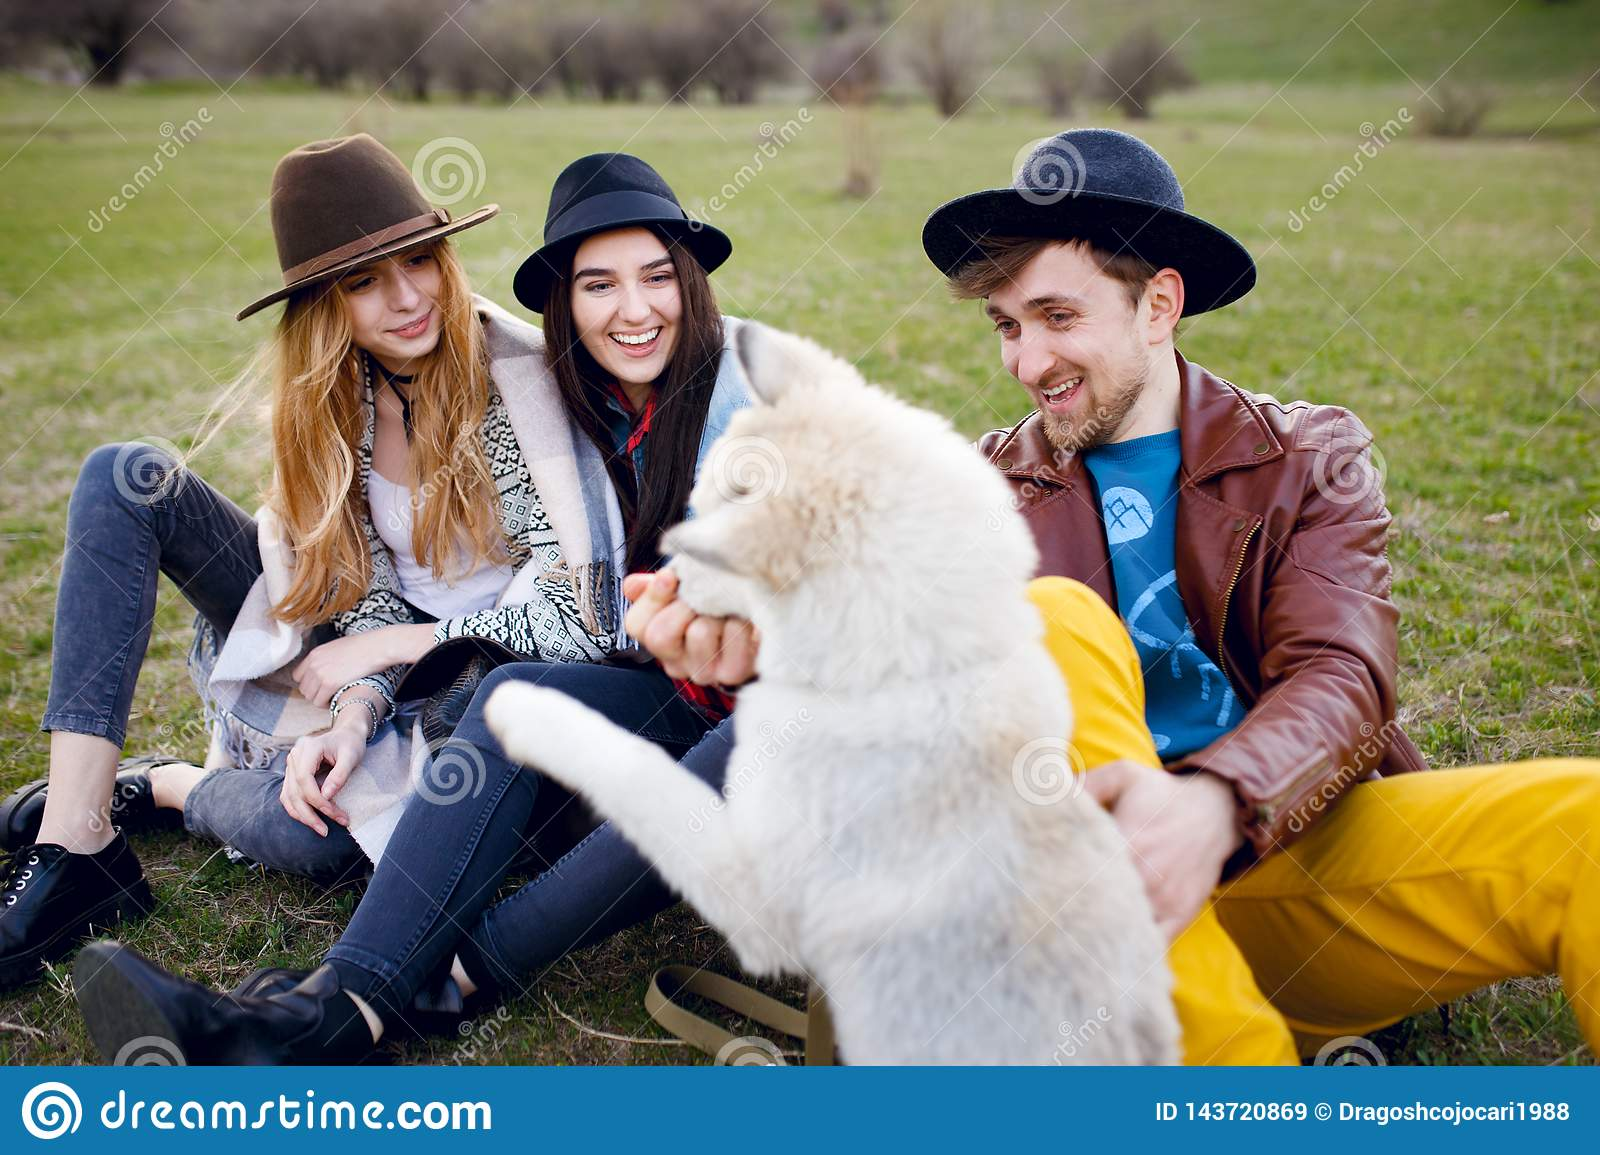 A three beautiful young stylish friends spend time outdoors together with their husky dog sitting on green grass.